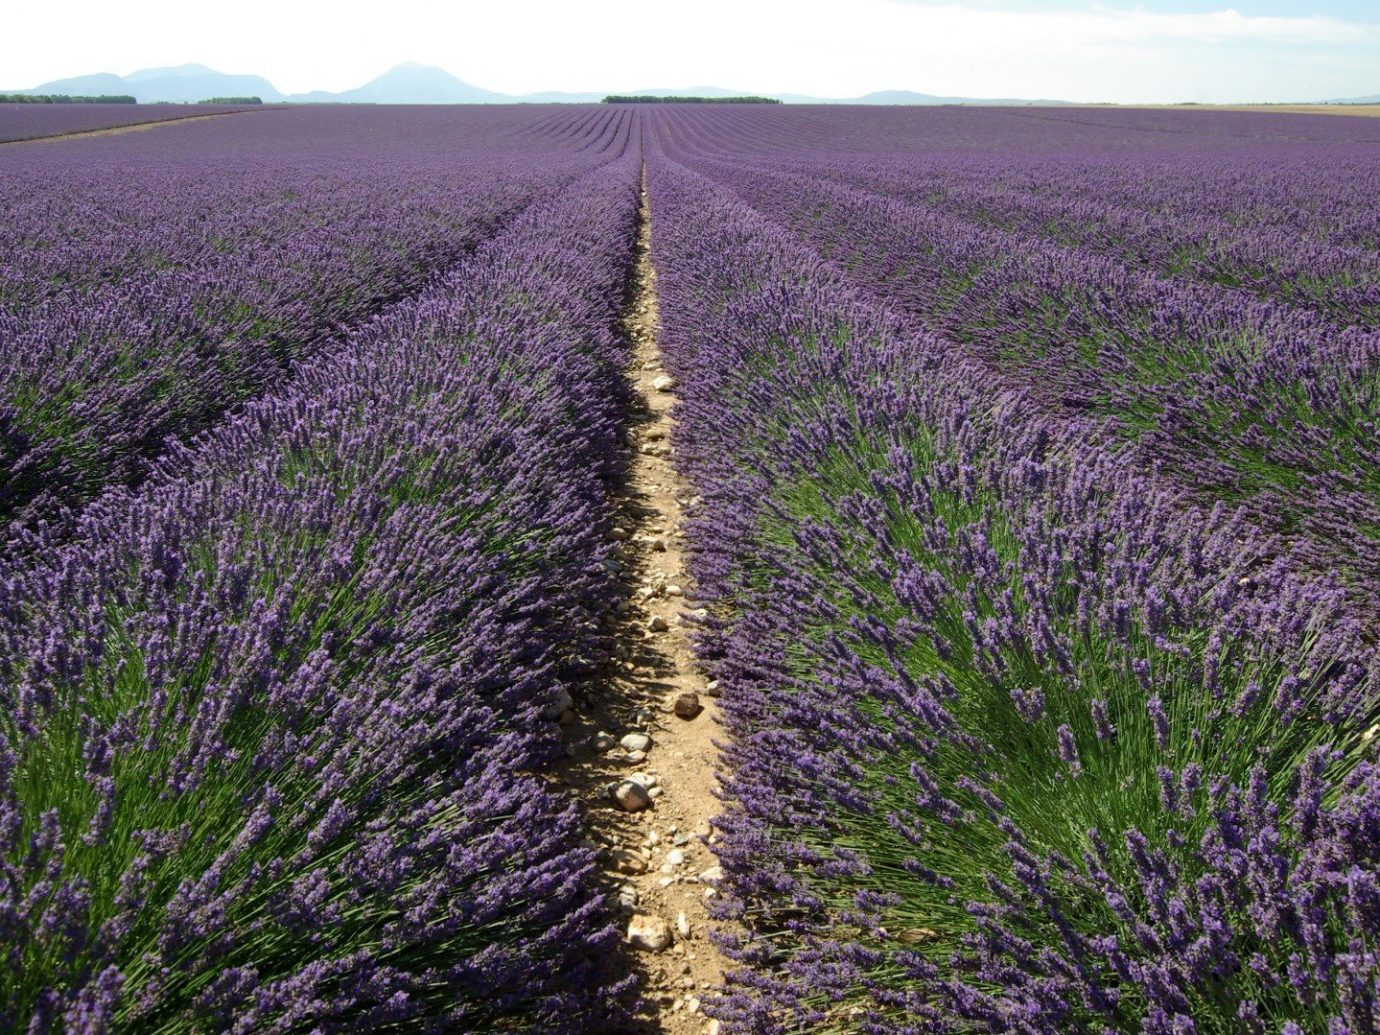 Road Trips Trip Ideas sky outdoor grass english lavender field lavender plant flower crop flowering plant purple agriculture french lavender grass family ecoregion spring prairie landscape meadow seed plant lamiales Farm plantation soil